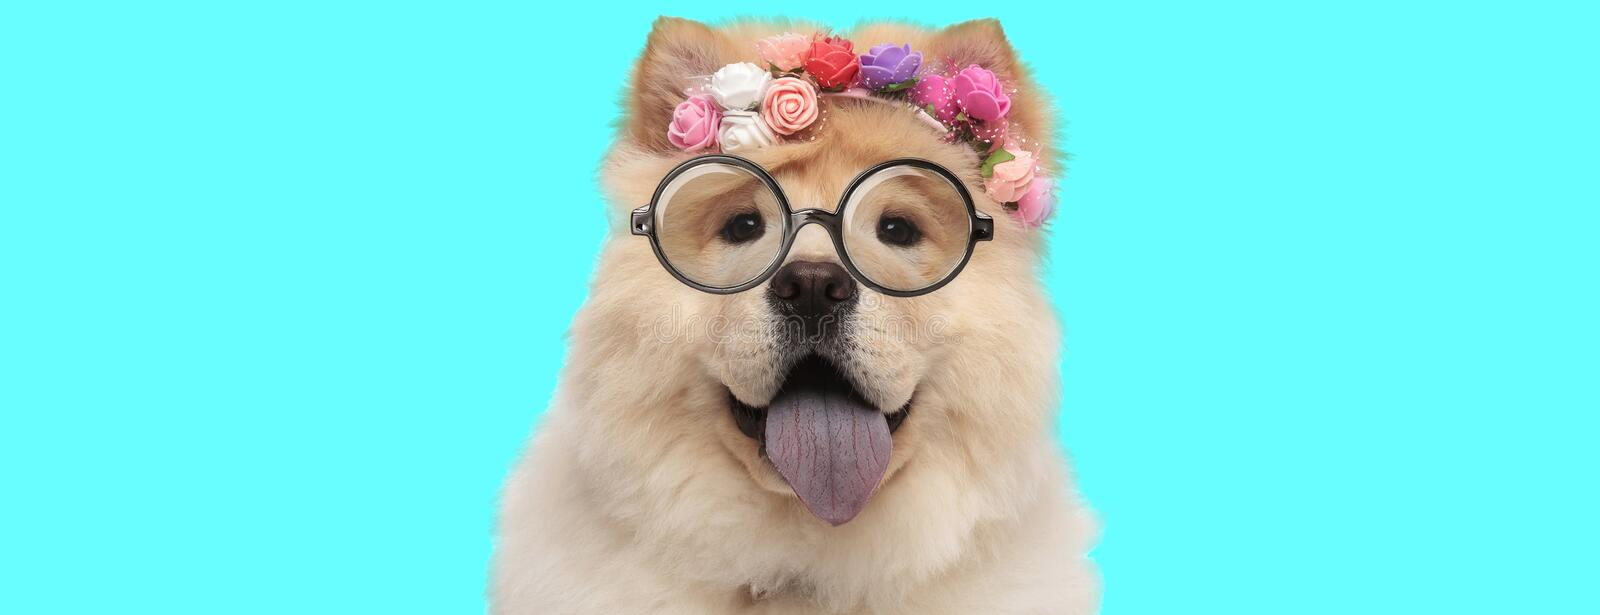 Adorable nerdy Chow Chow dog sticking put his tongue royalty free stock photos